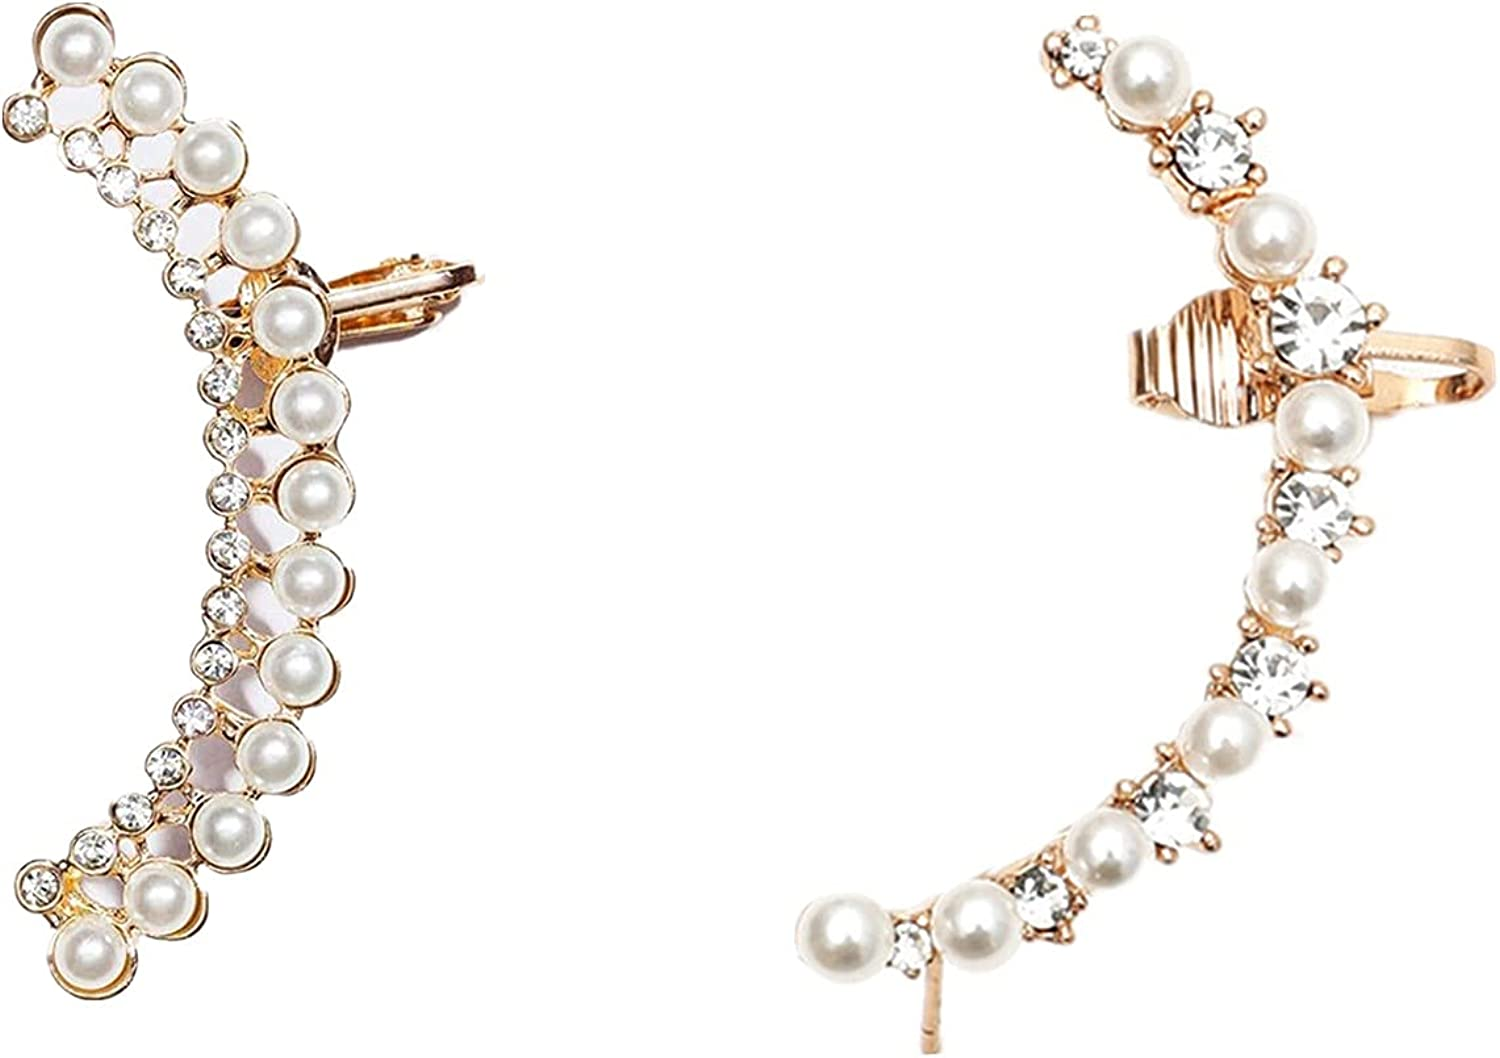 COLORFUL BLING 2Pcs Pearl Zircon Inlaid Wrap Crawler Climber Earrings Vintage Cuff Stud for Left Piercing Ear